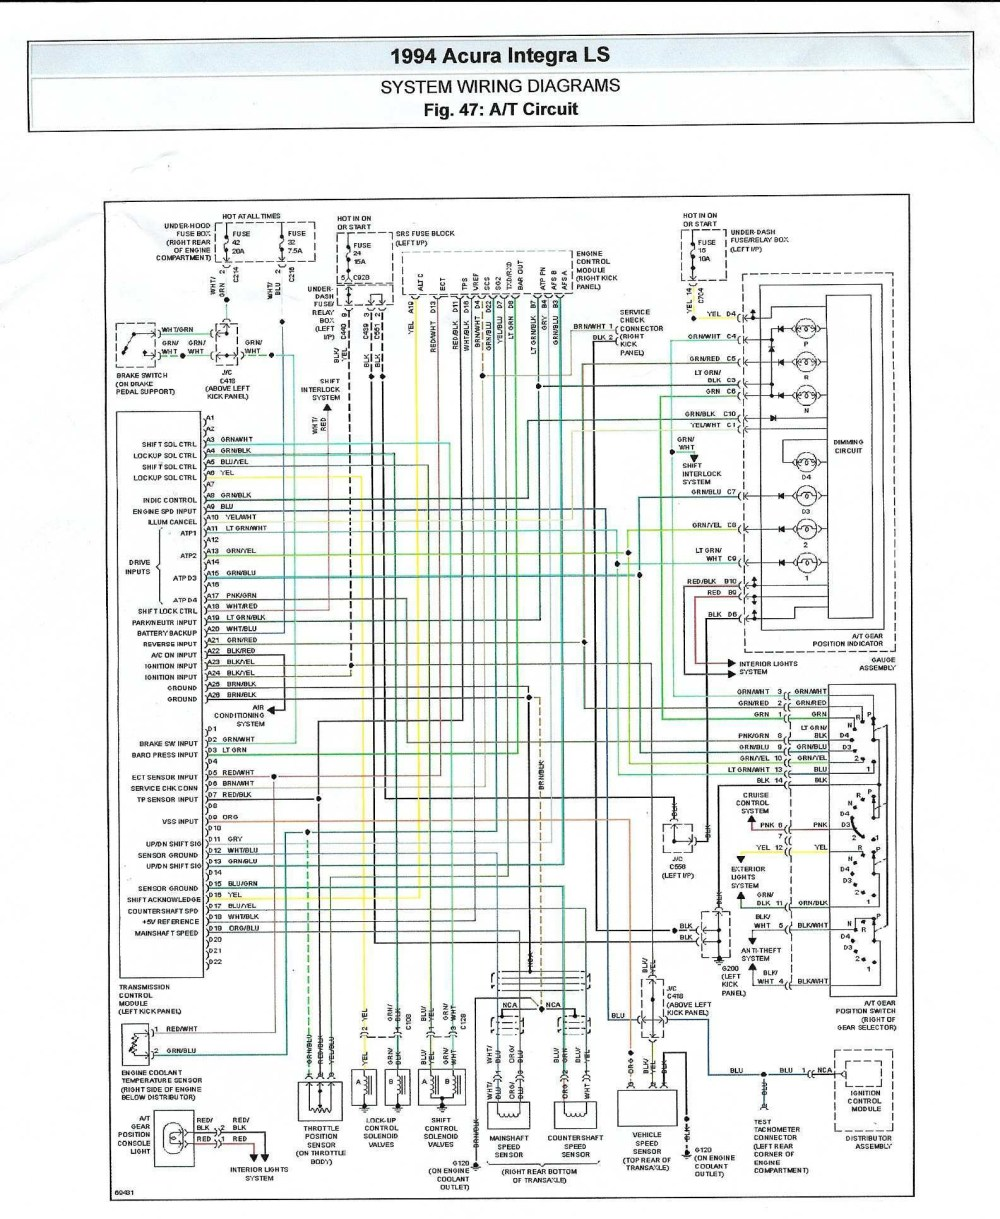 medium resolution of 2014 honda accord wiring diagram collection 1991 honda accord stereo wiring diagram 11 a